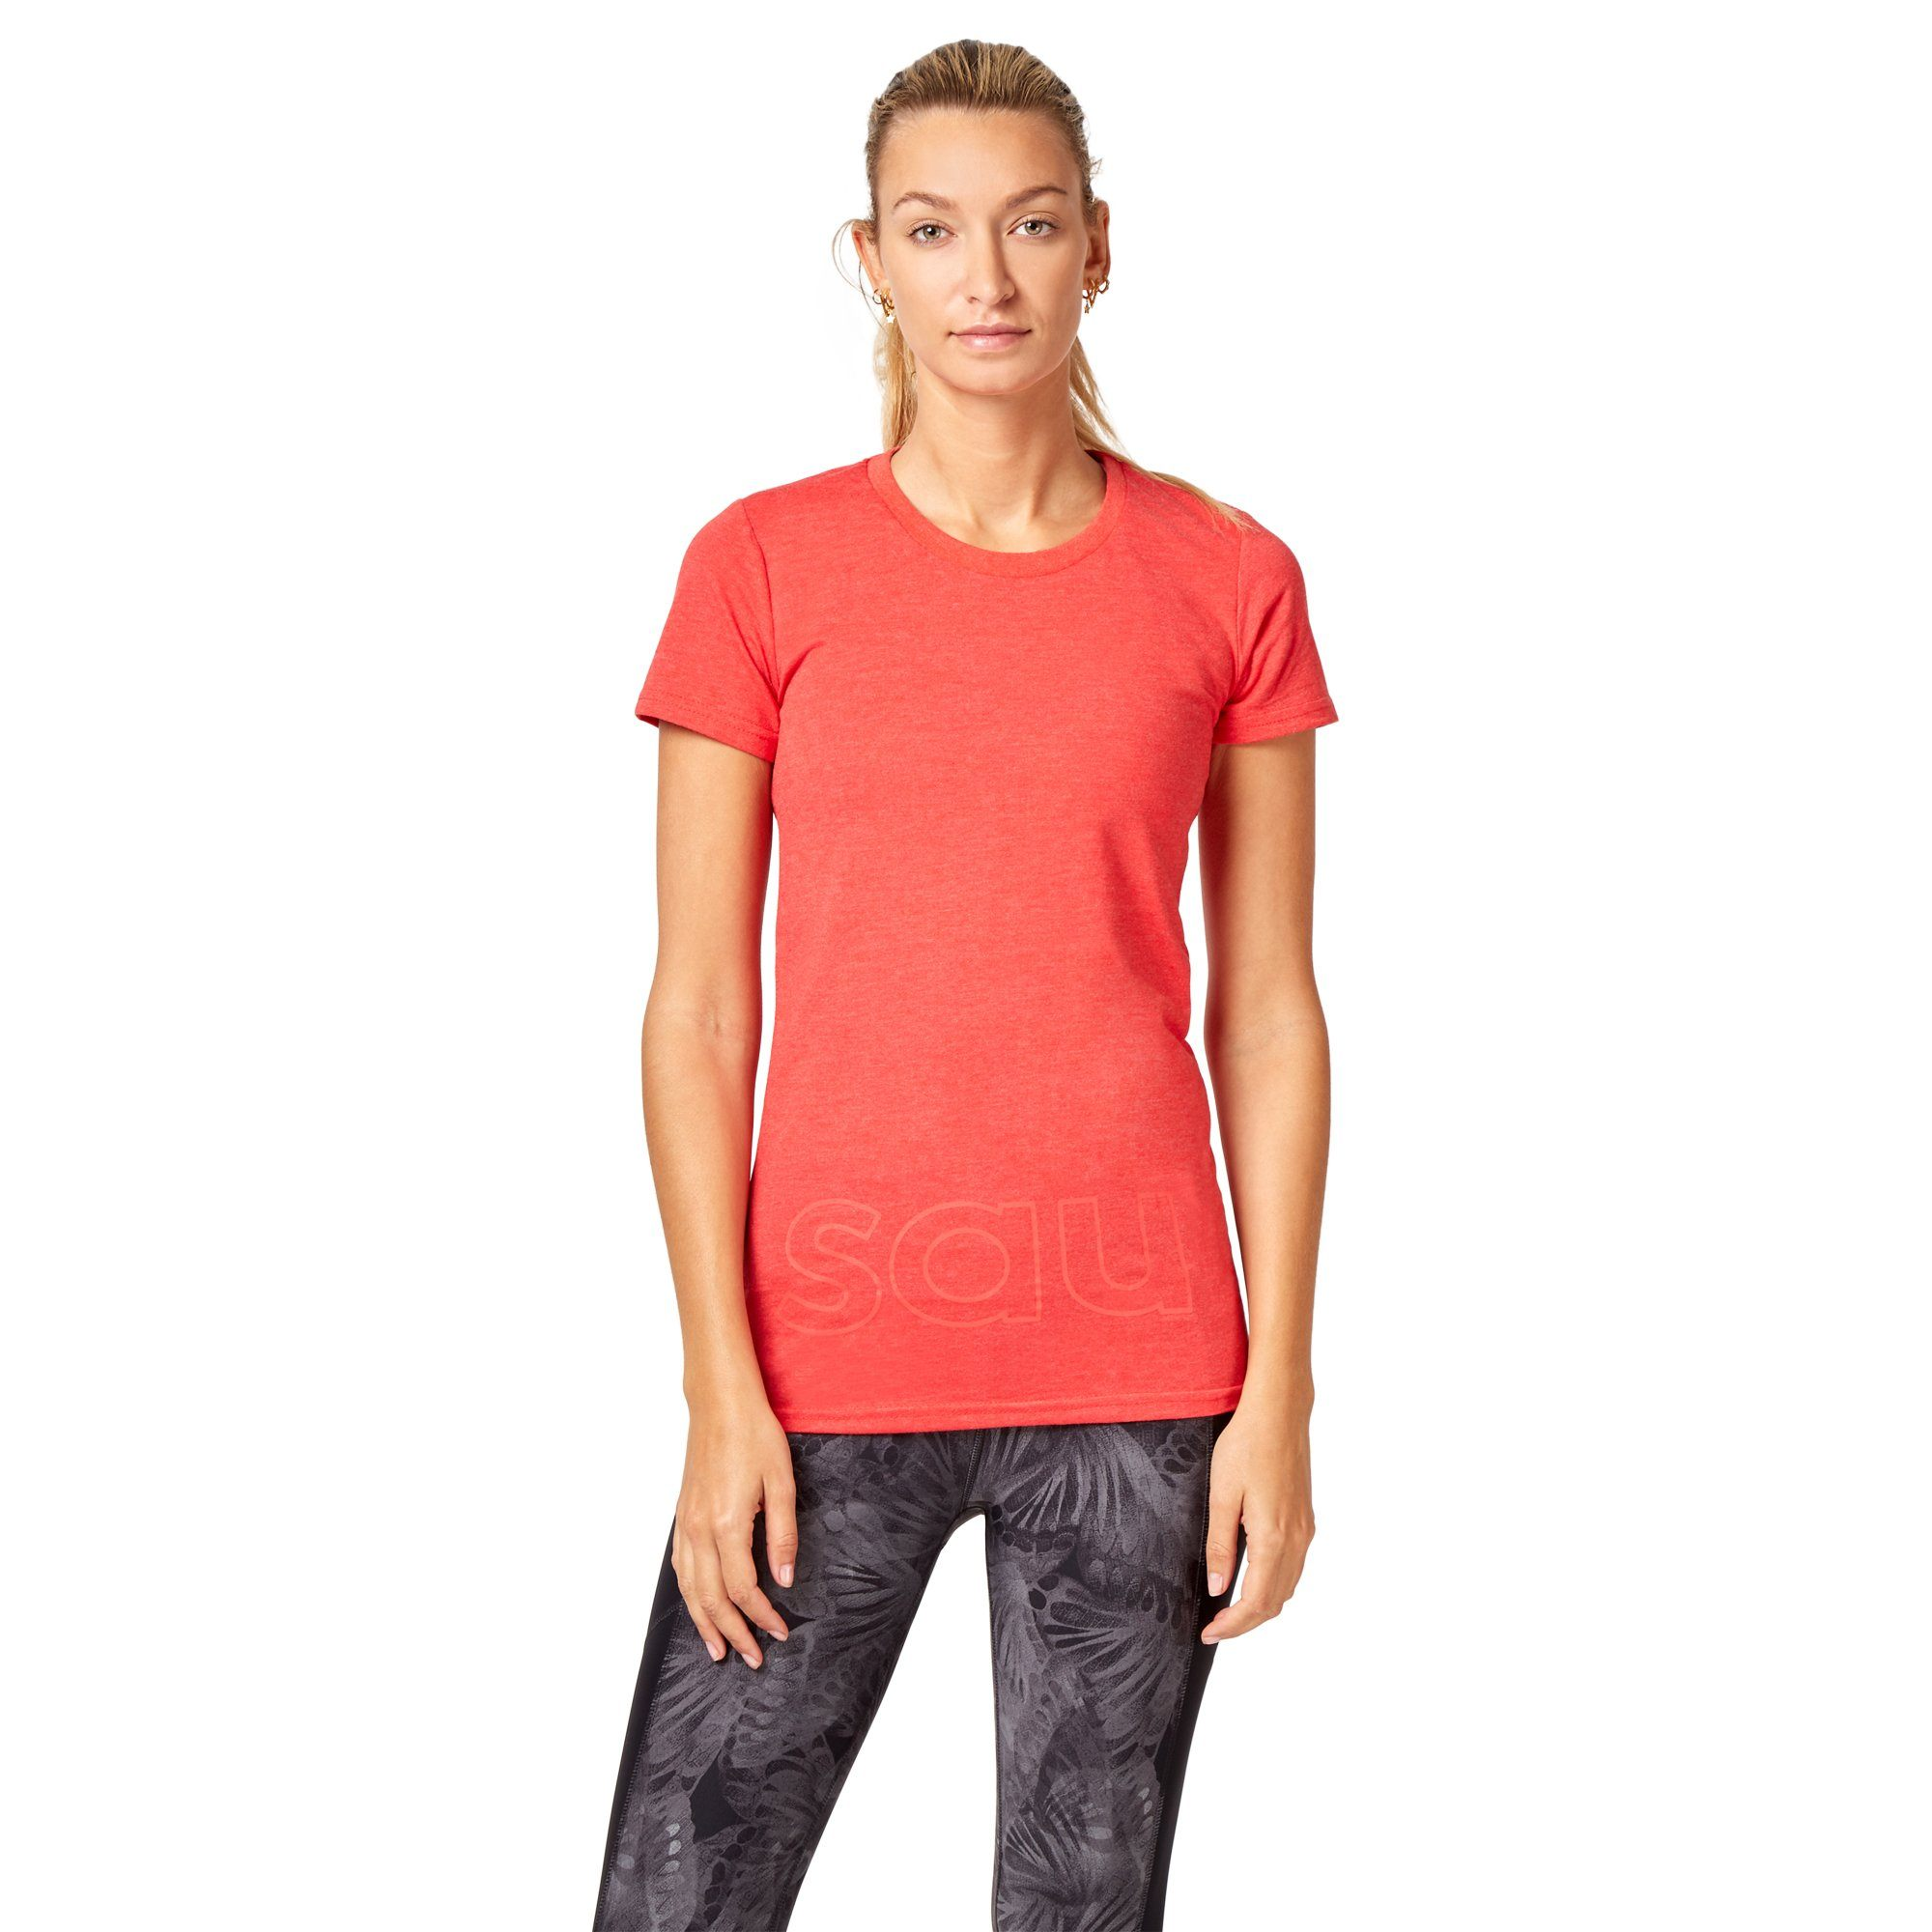 Saucony Band Logo Tee - Flame Scarlet Apparel Saucony